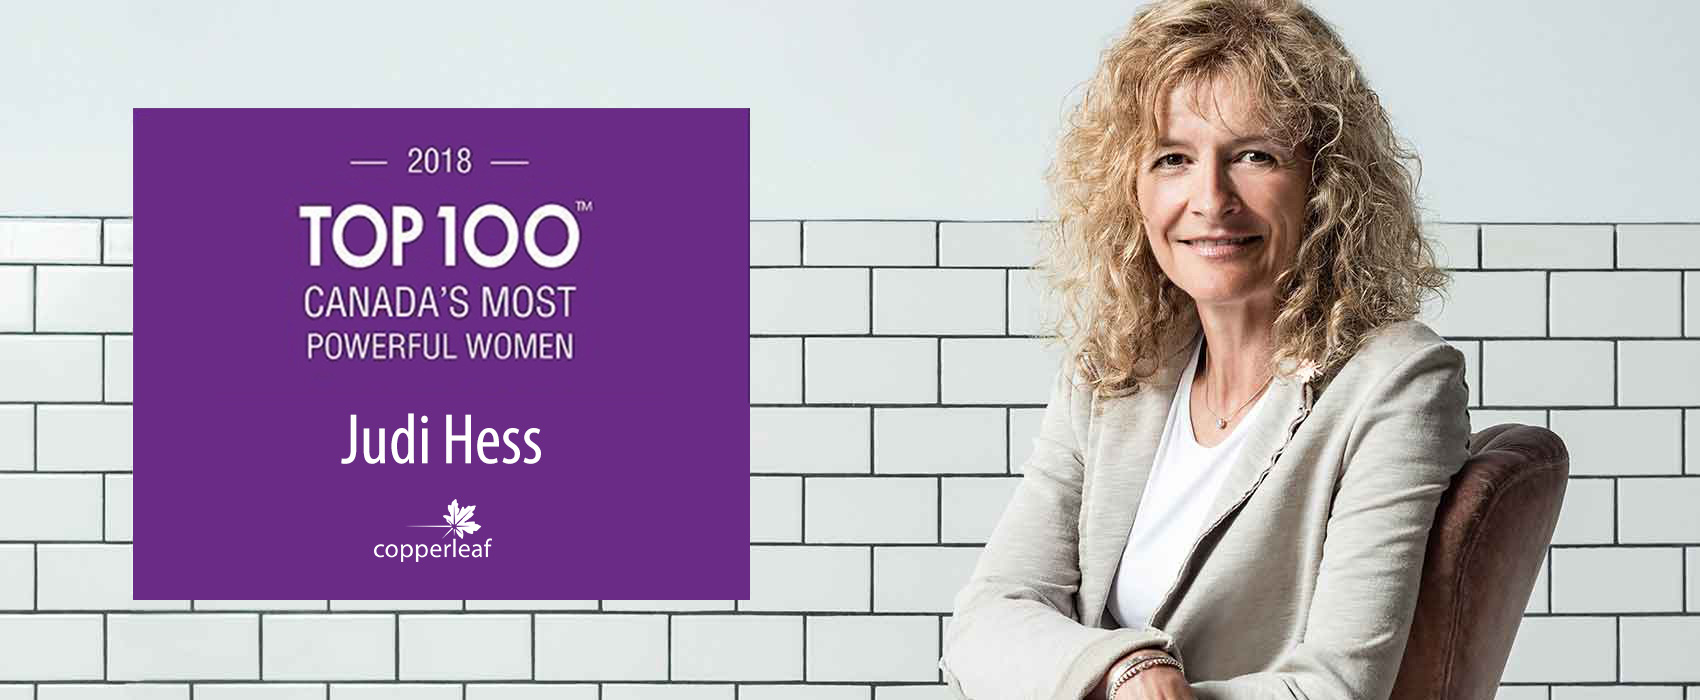 Image for Copperleaf CEO Judi Hess Named One of Canada's Most Powerful Women by WXN 2018